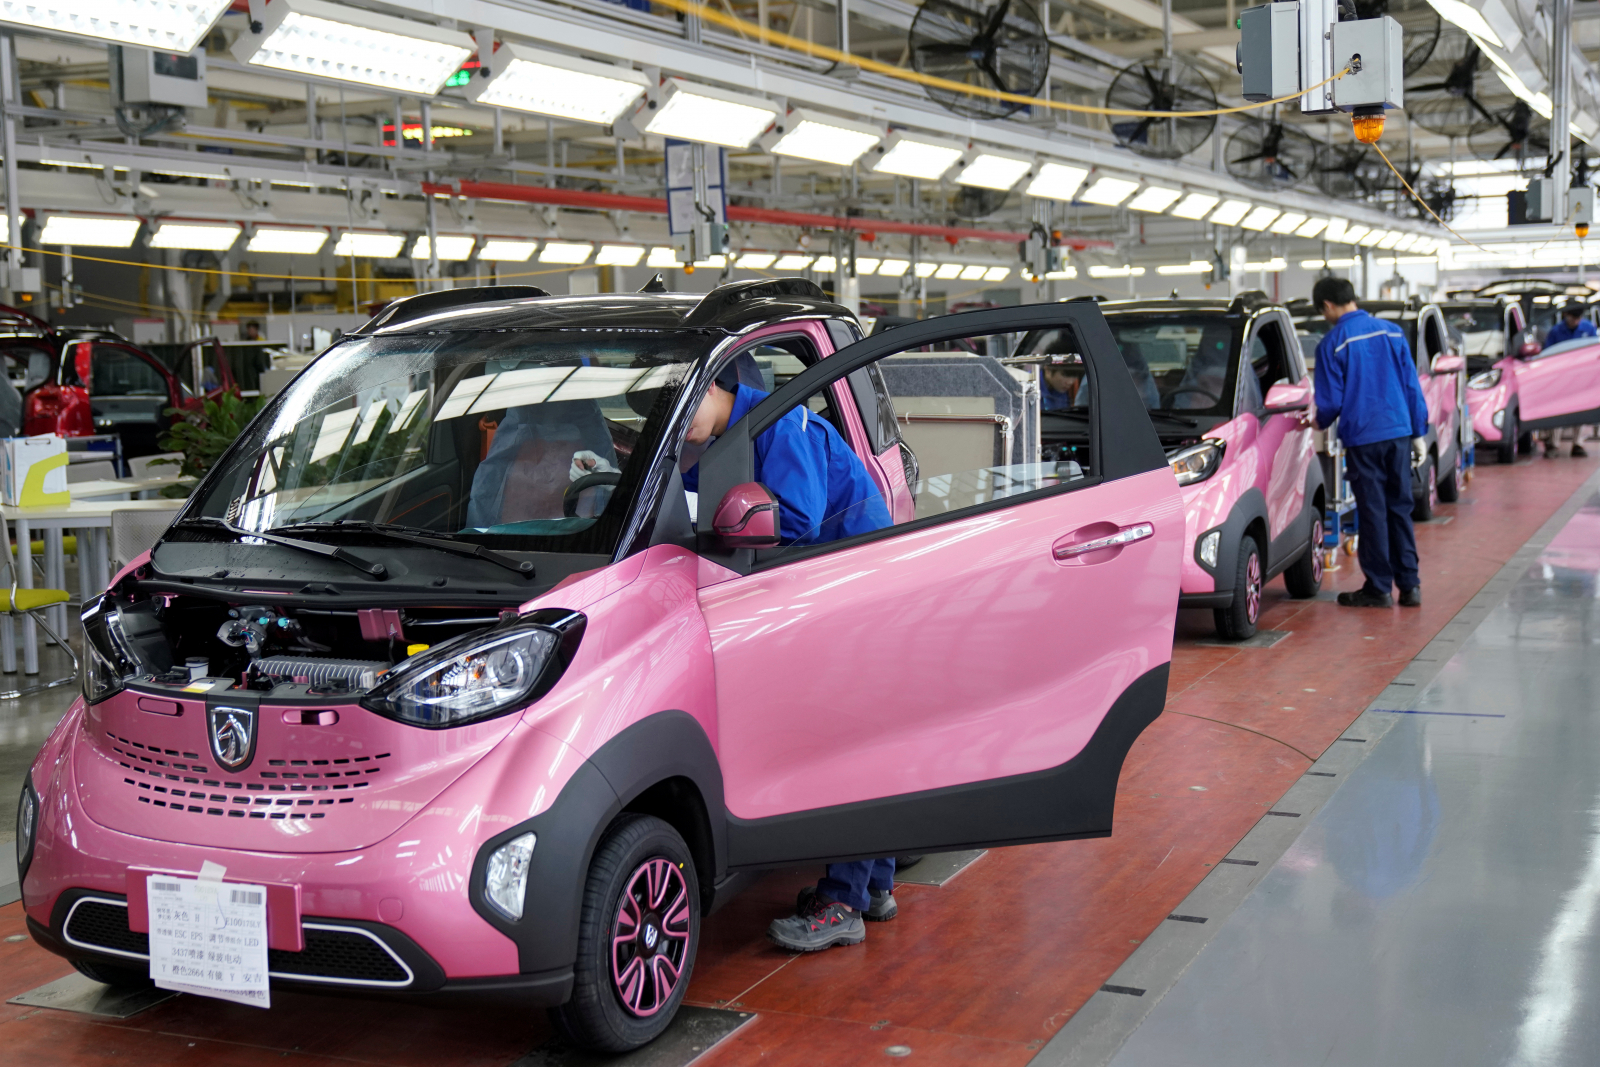 Subsidies For Electric Car Producers